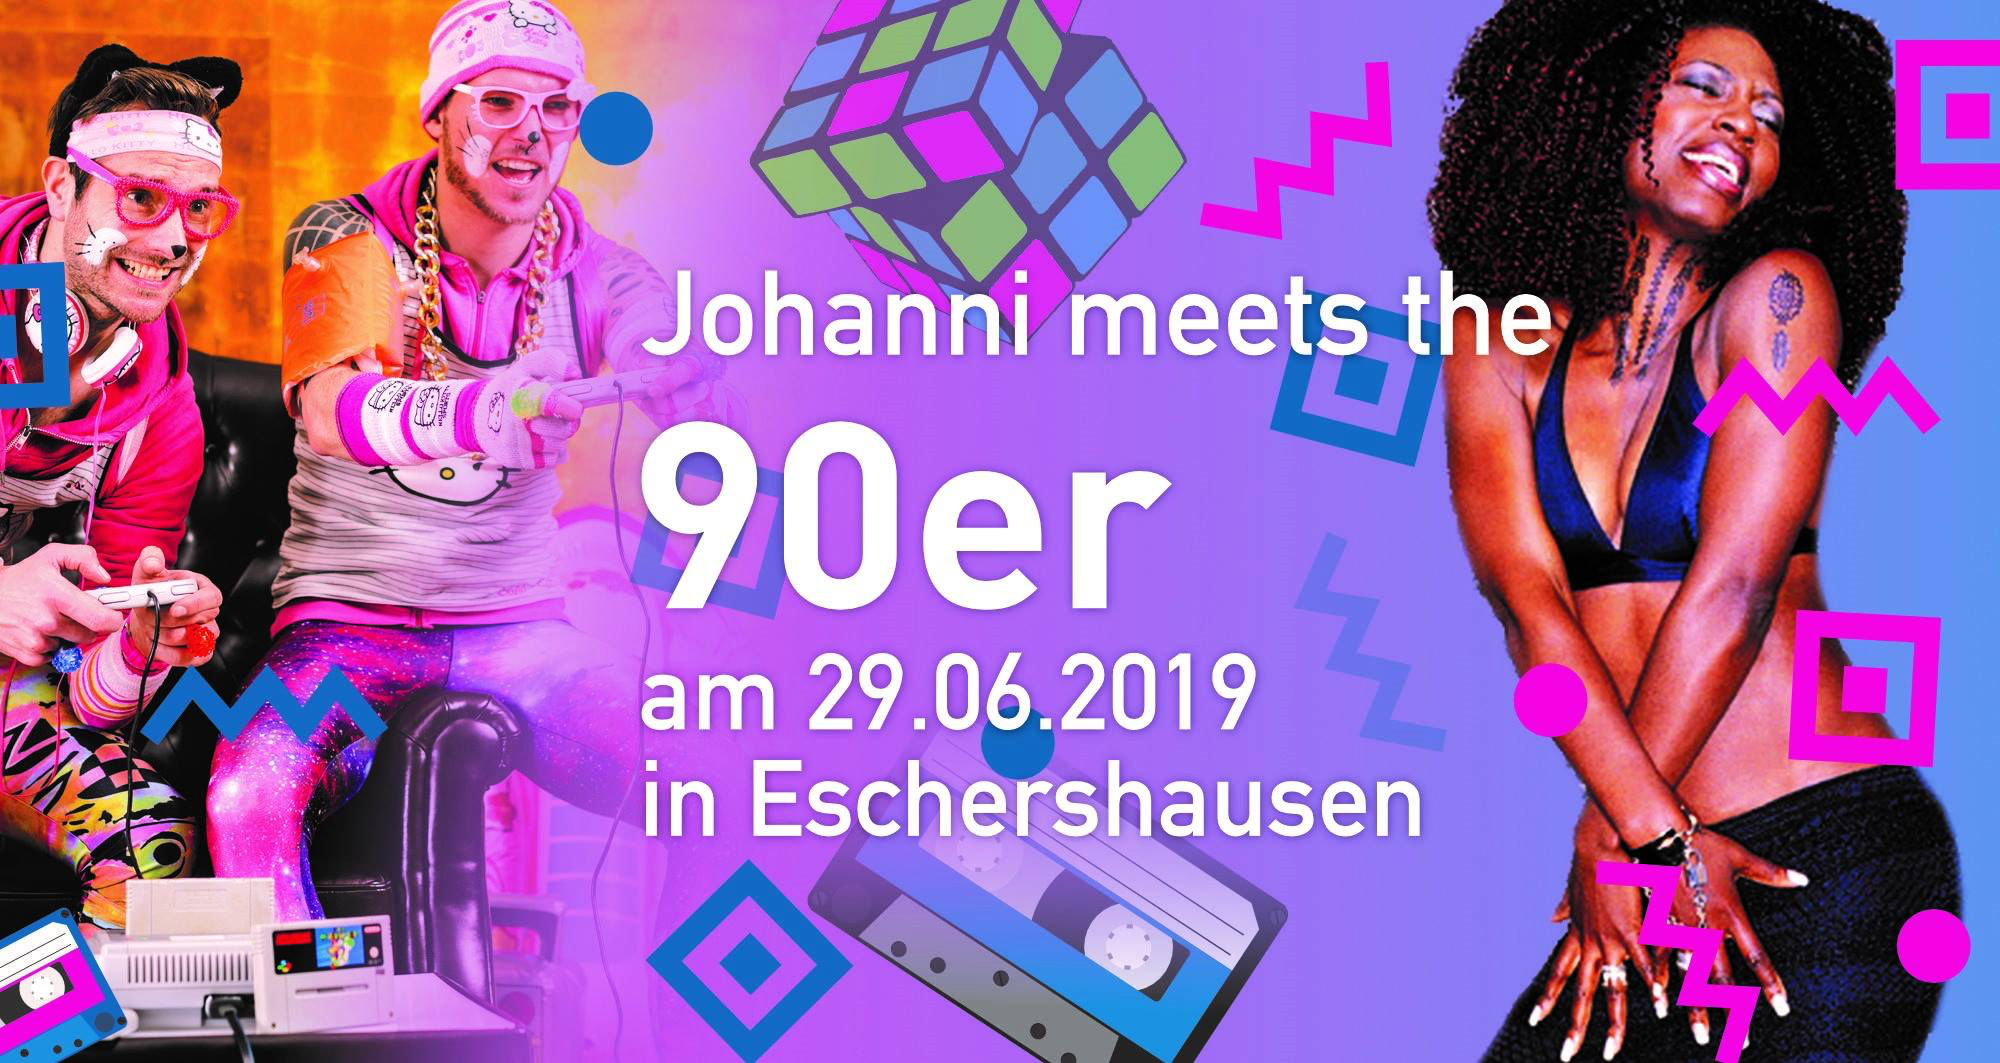 Johanni meets the 90`s – 29.06.2019 – Eschershausen, Niedersachsen Eschershausen - 29.06.2019